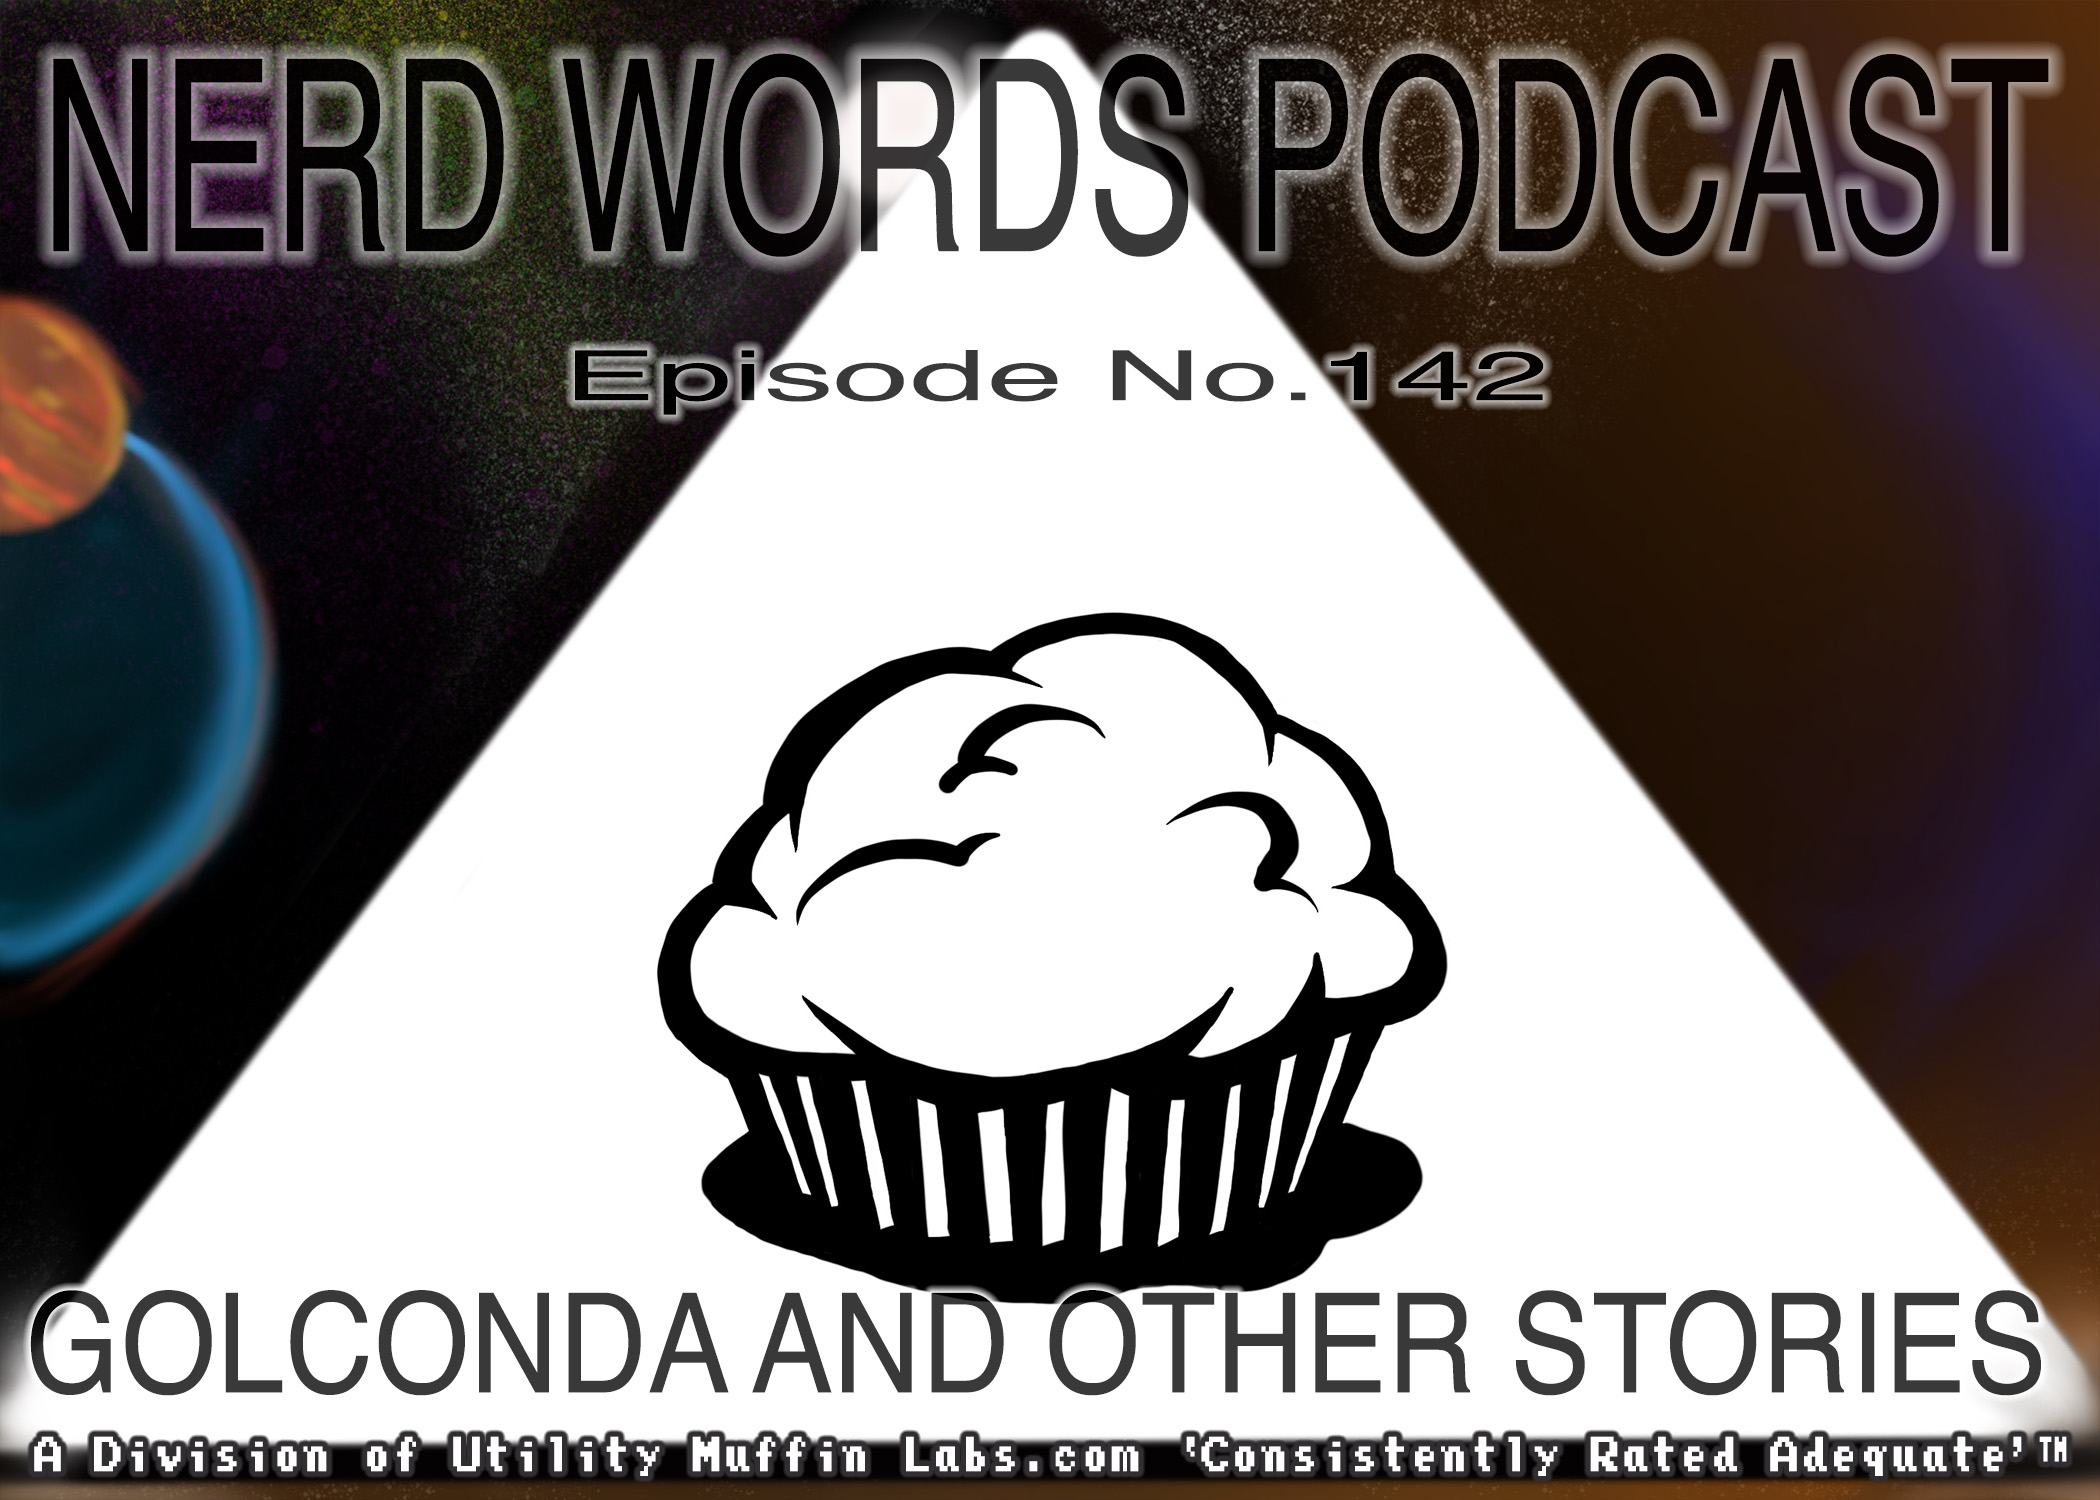 Nerd Words Podcast 142.jpg